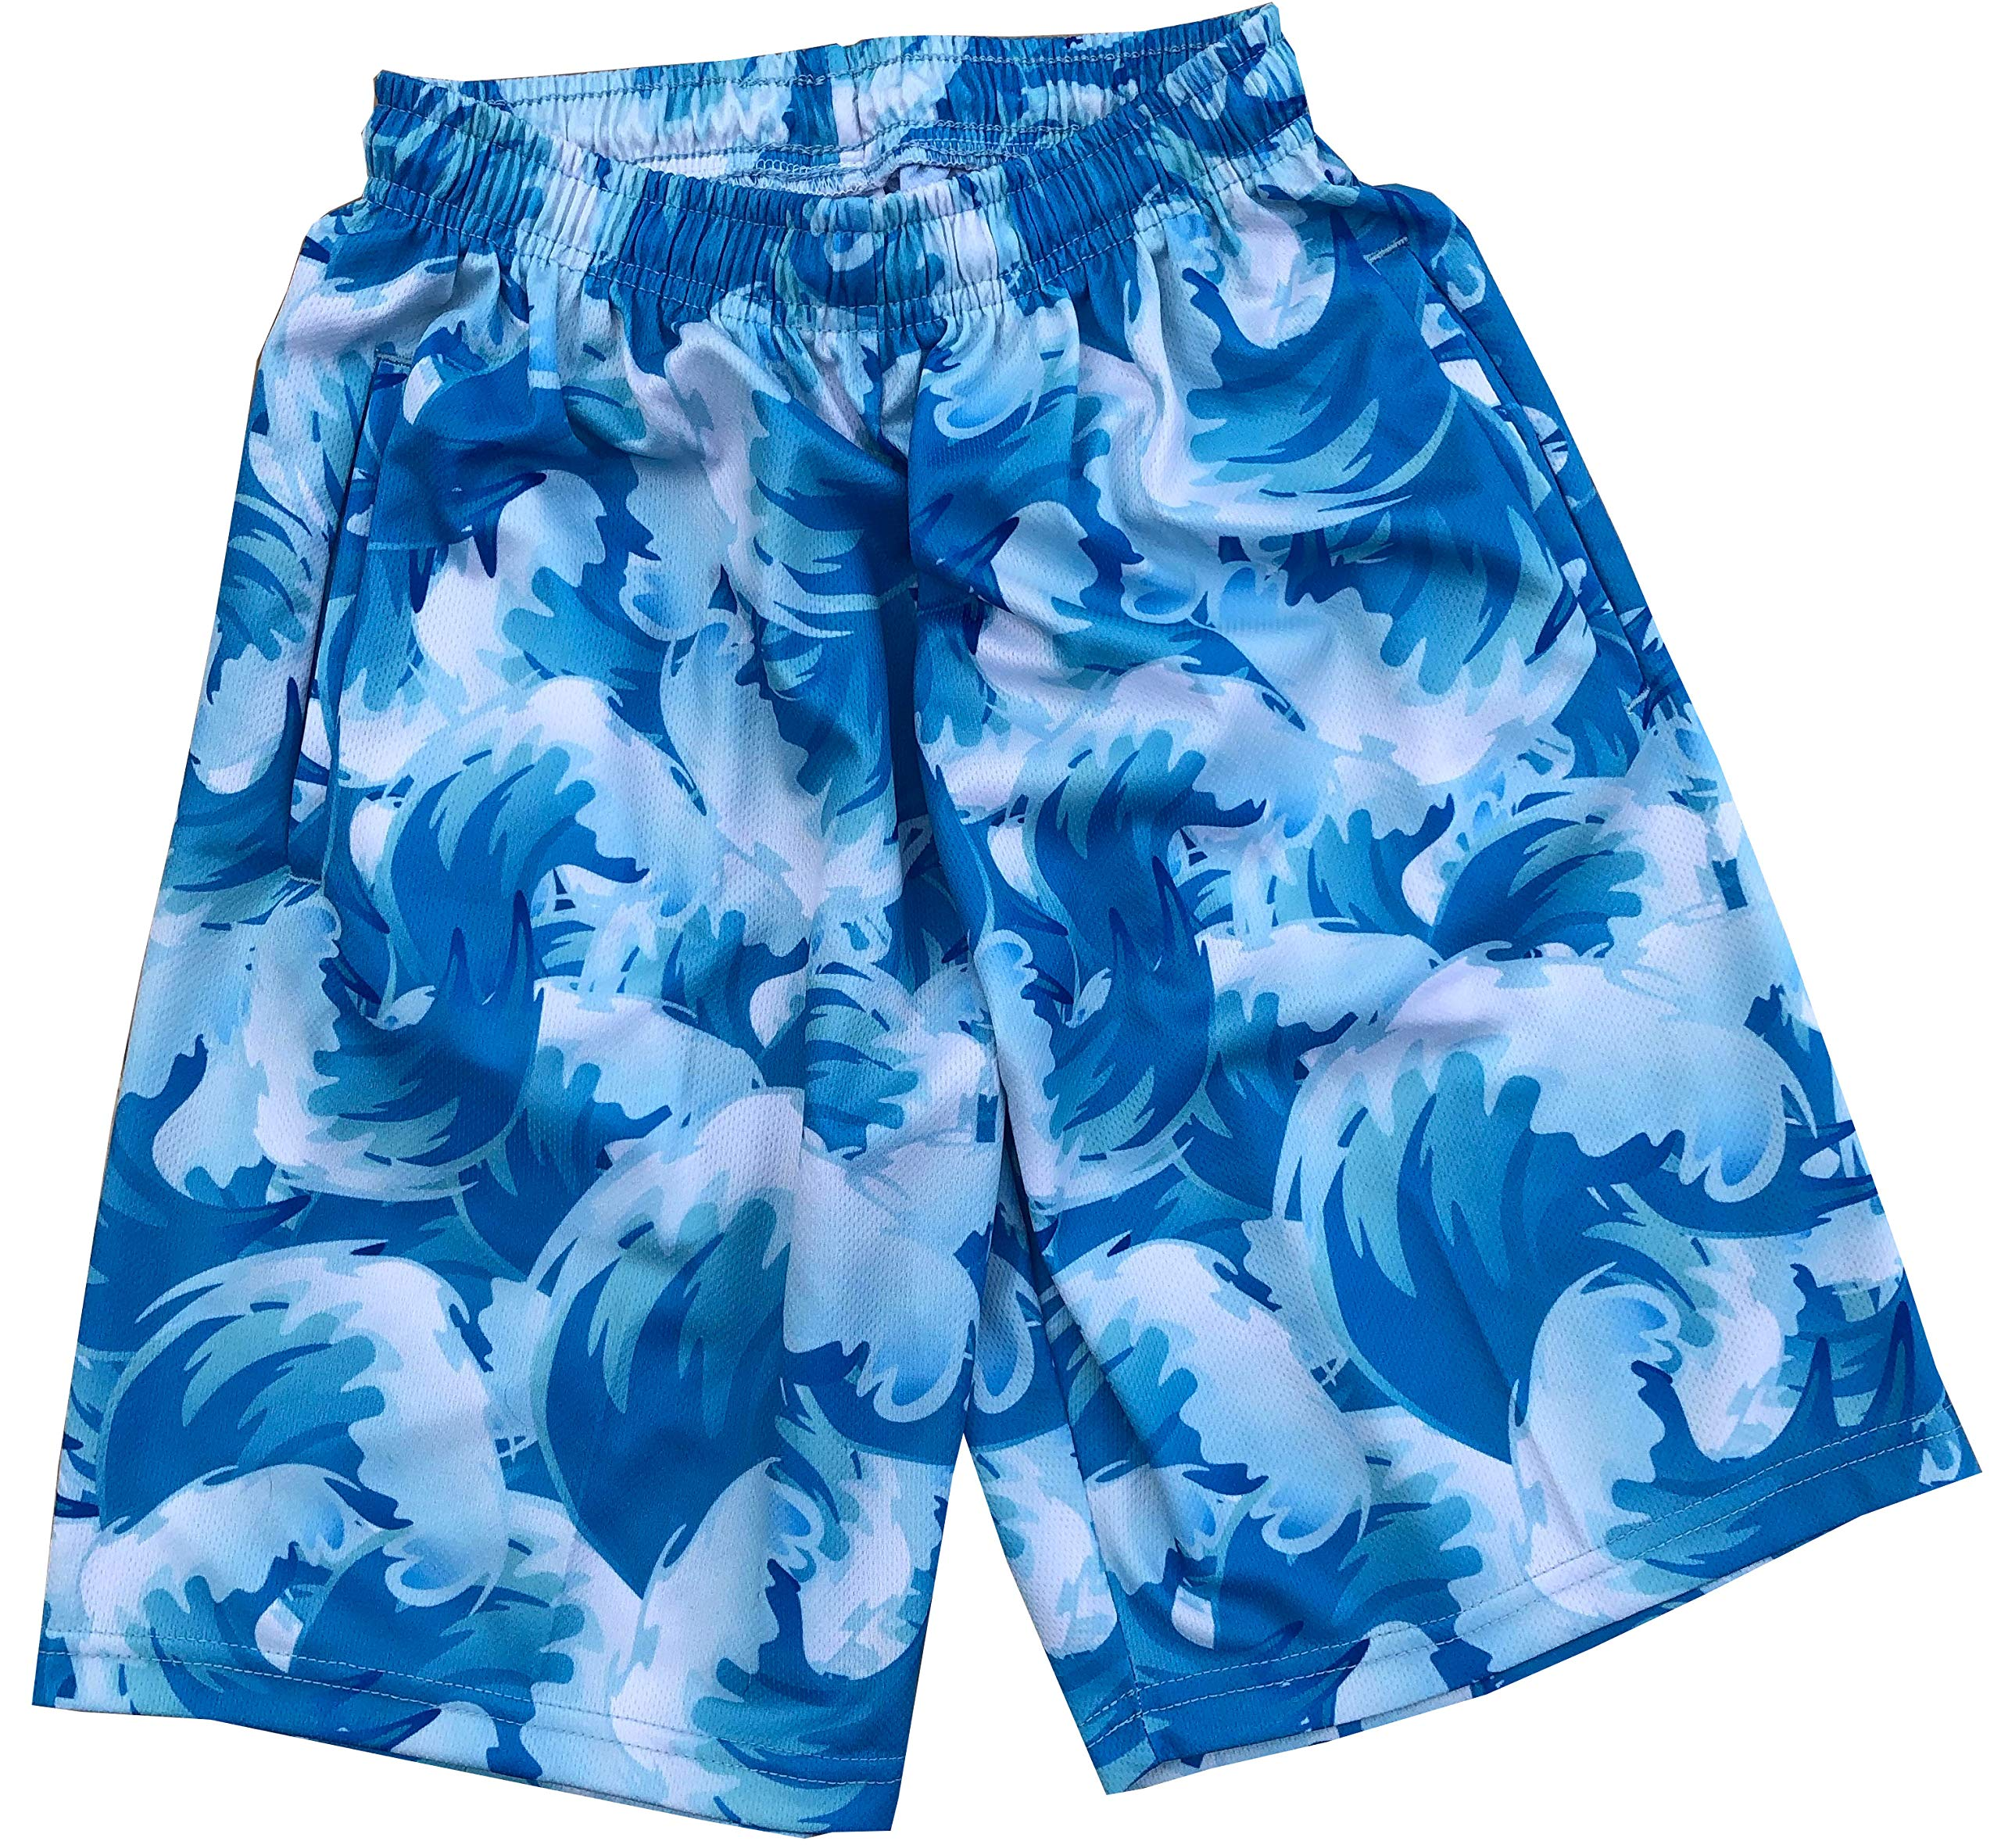 Lacrosse Shorts - Waves, Knee Length with Deep Pockets (Youth Large)